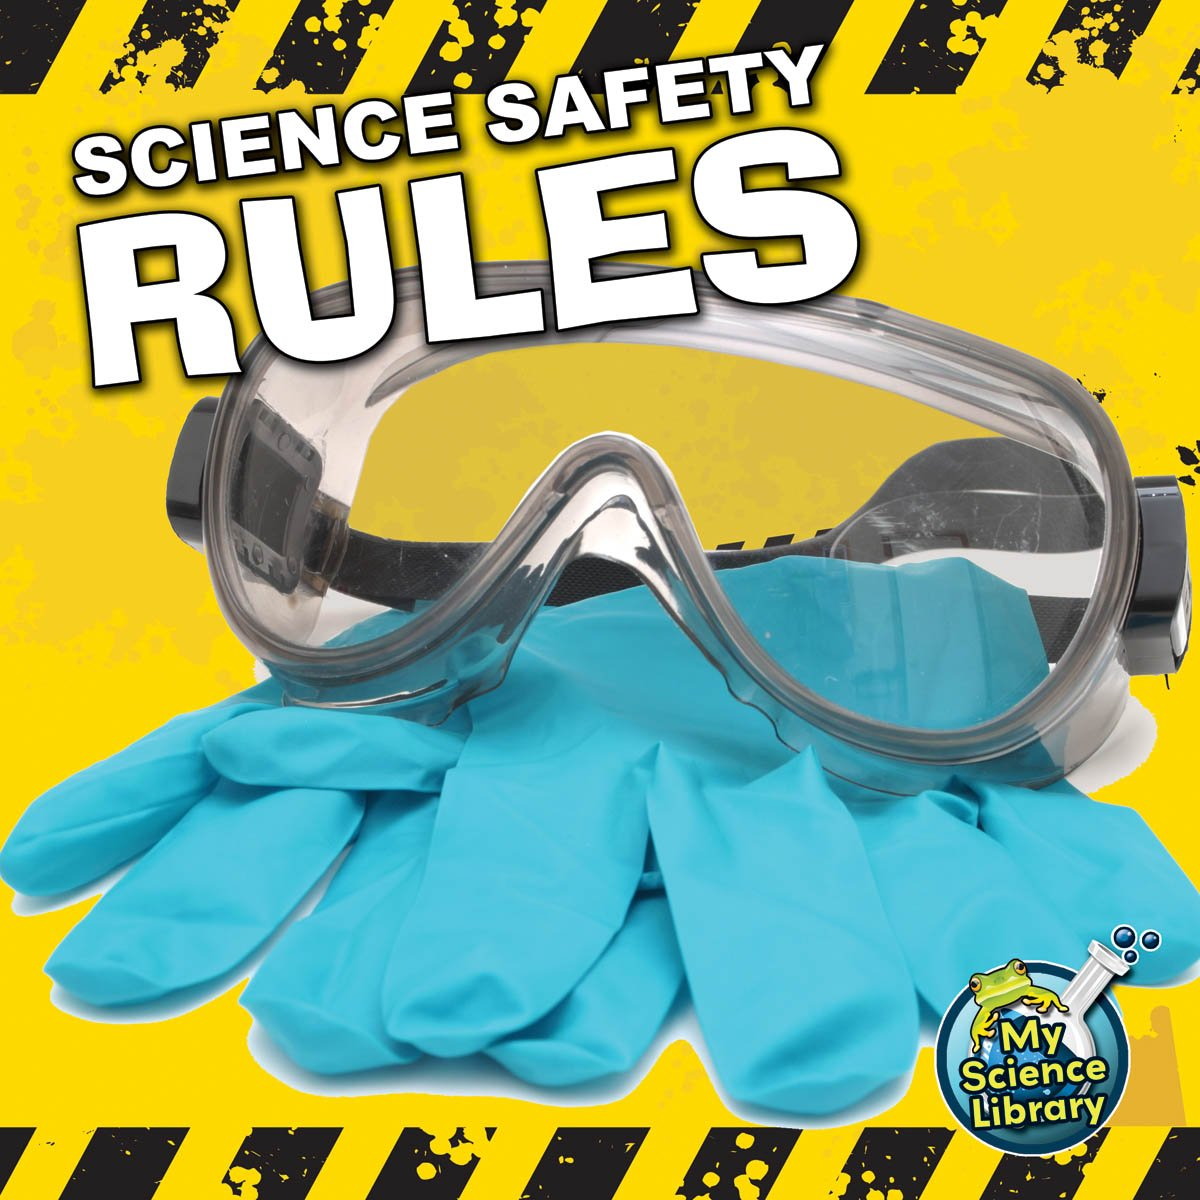 Amazon.com: Science Safety Rules (My Science Library) (9781617419324 ...